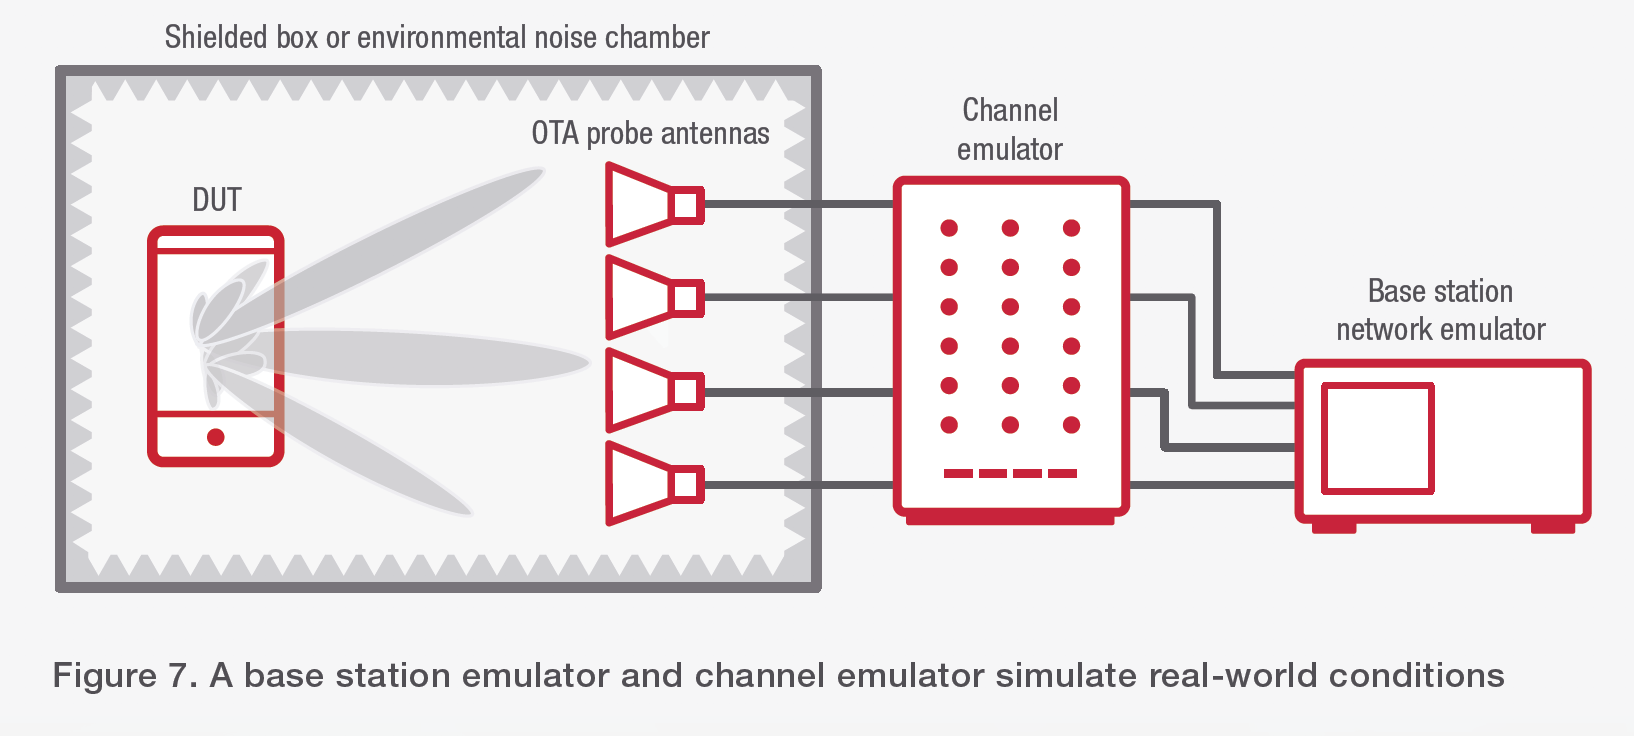 Figure 7. A base station emulator and channel emulator simulate real-world conditions